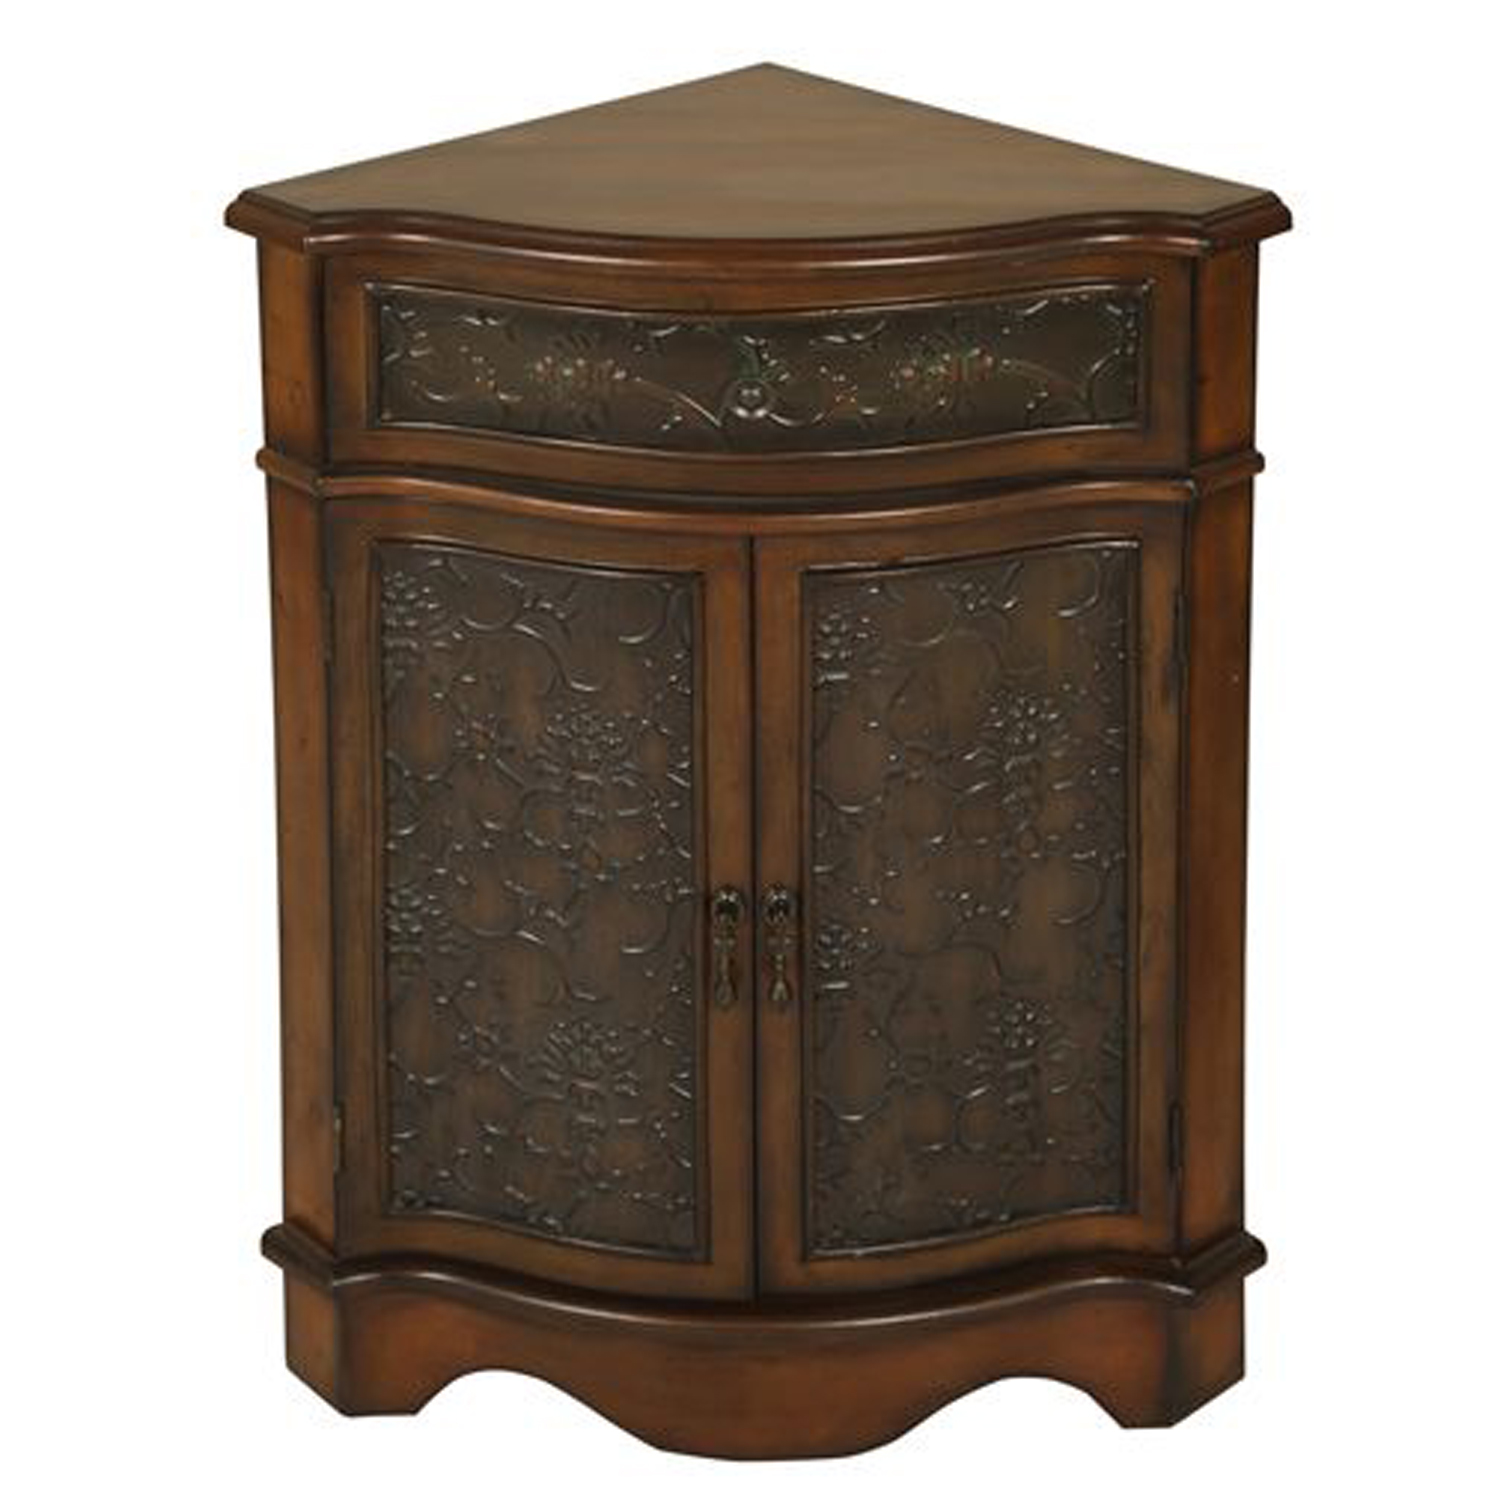 passport mario walnut corner cabinet bellacor accent table with drawers and doors hover zoom mid century modern sofa pub garden furniture freya round nautical light fixtures side